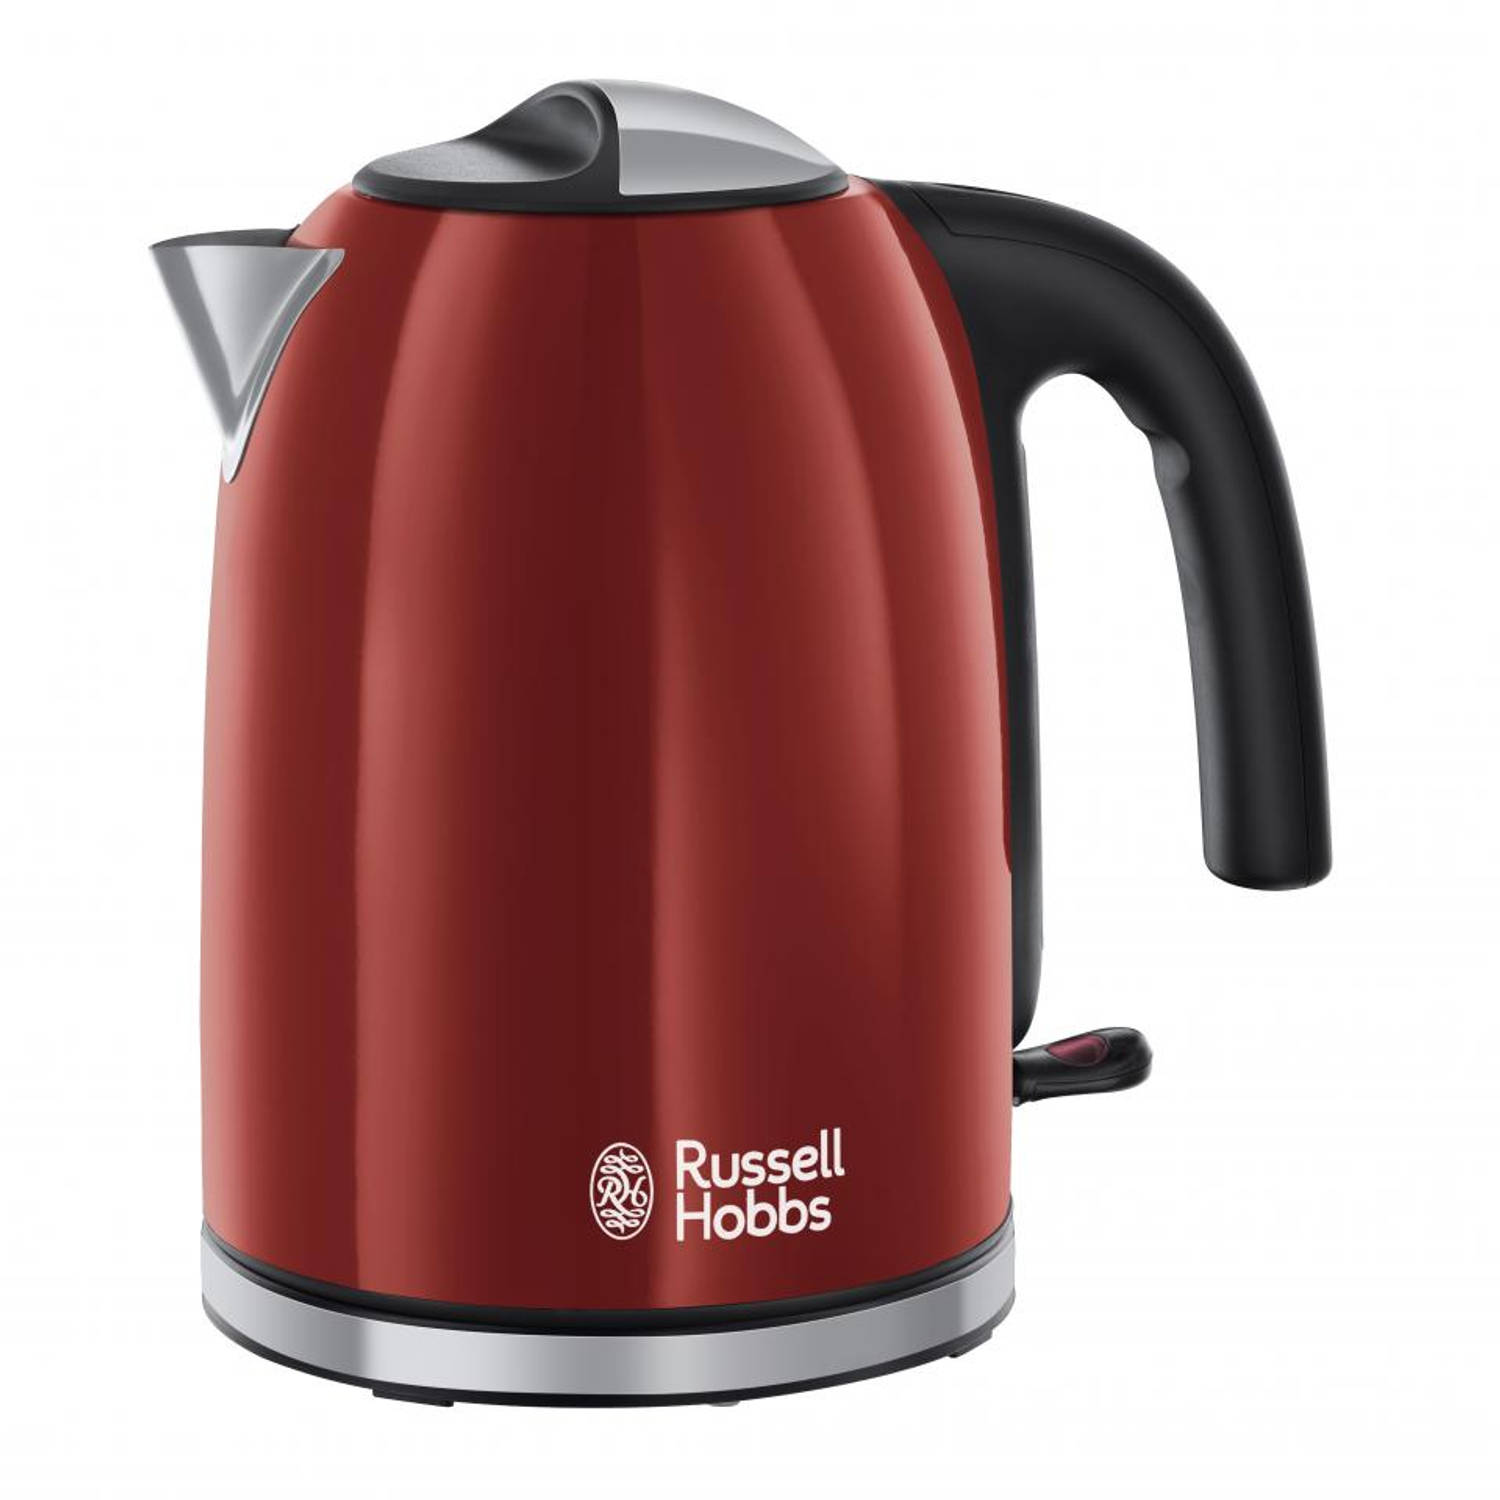 Russell Hobbs Colours Plus waterkoker 20412-70 - rood